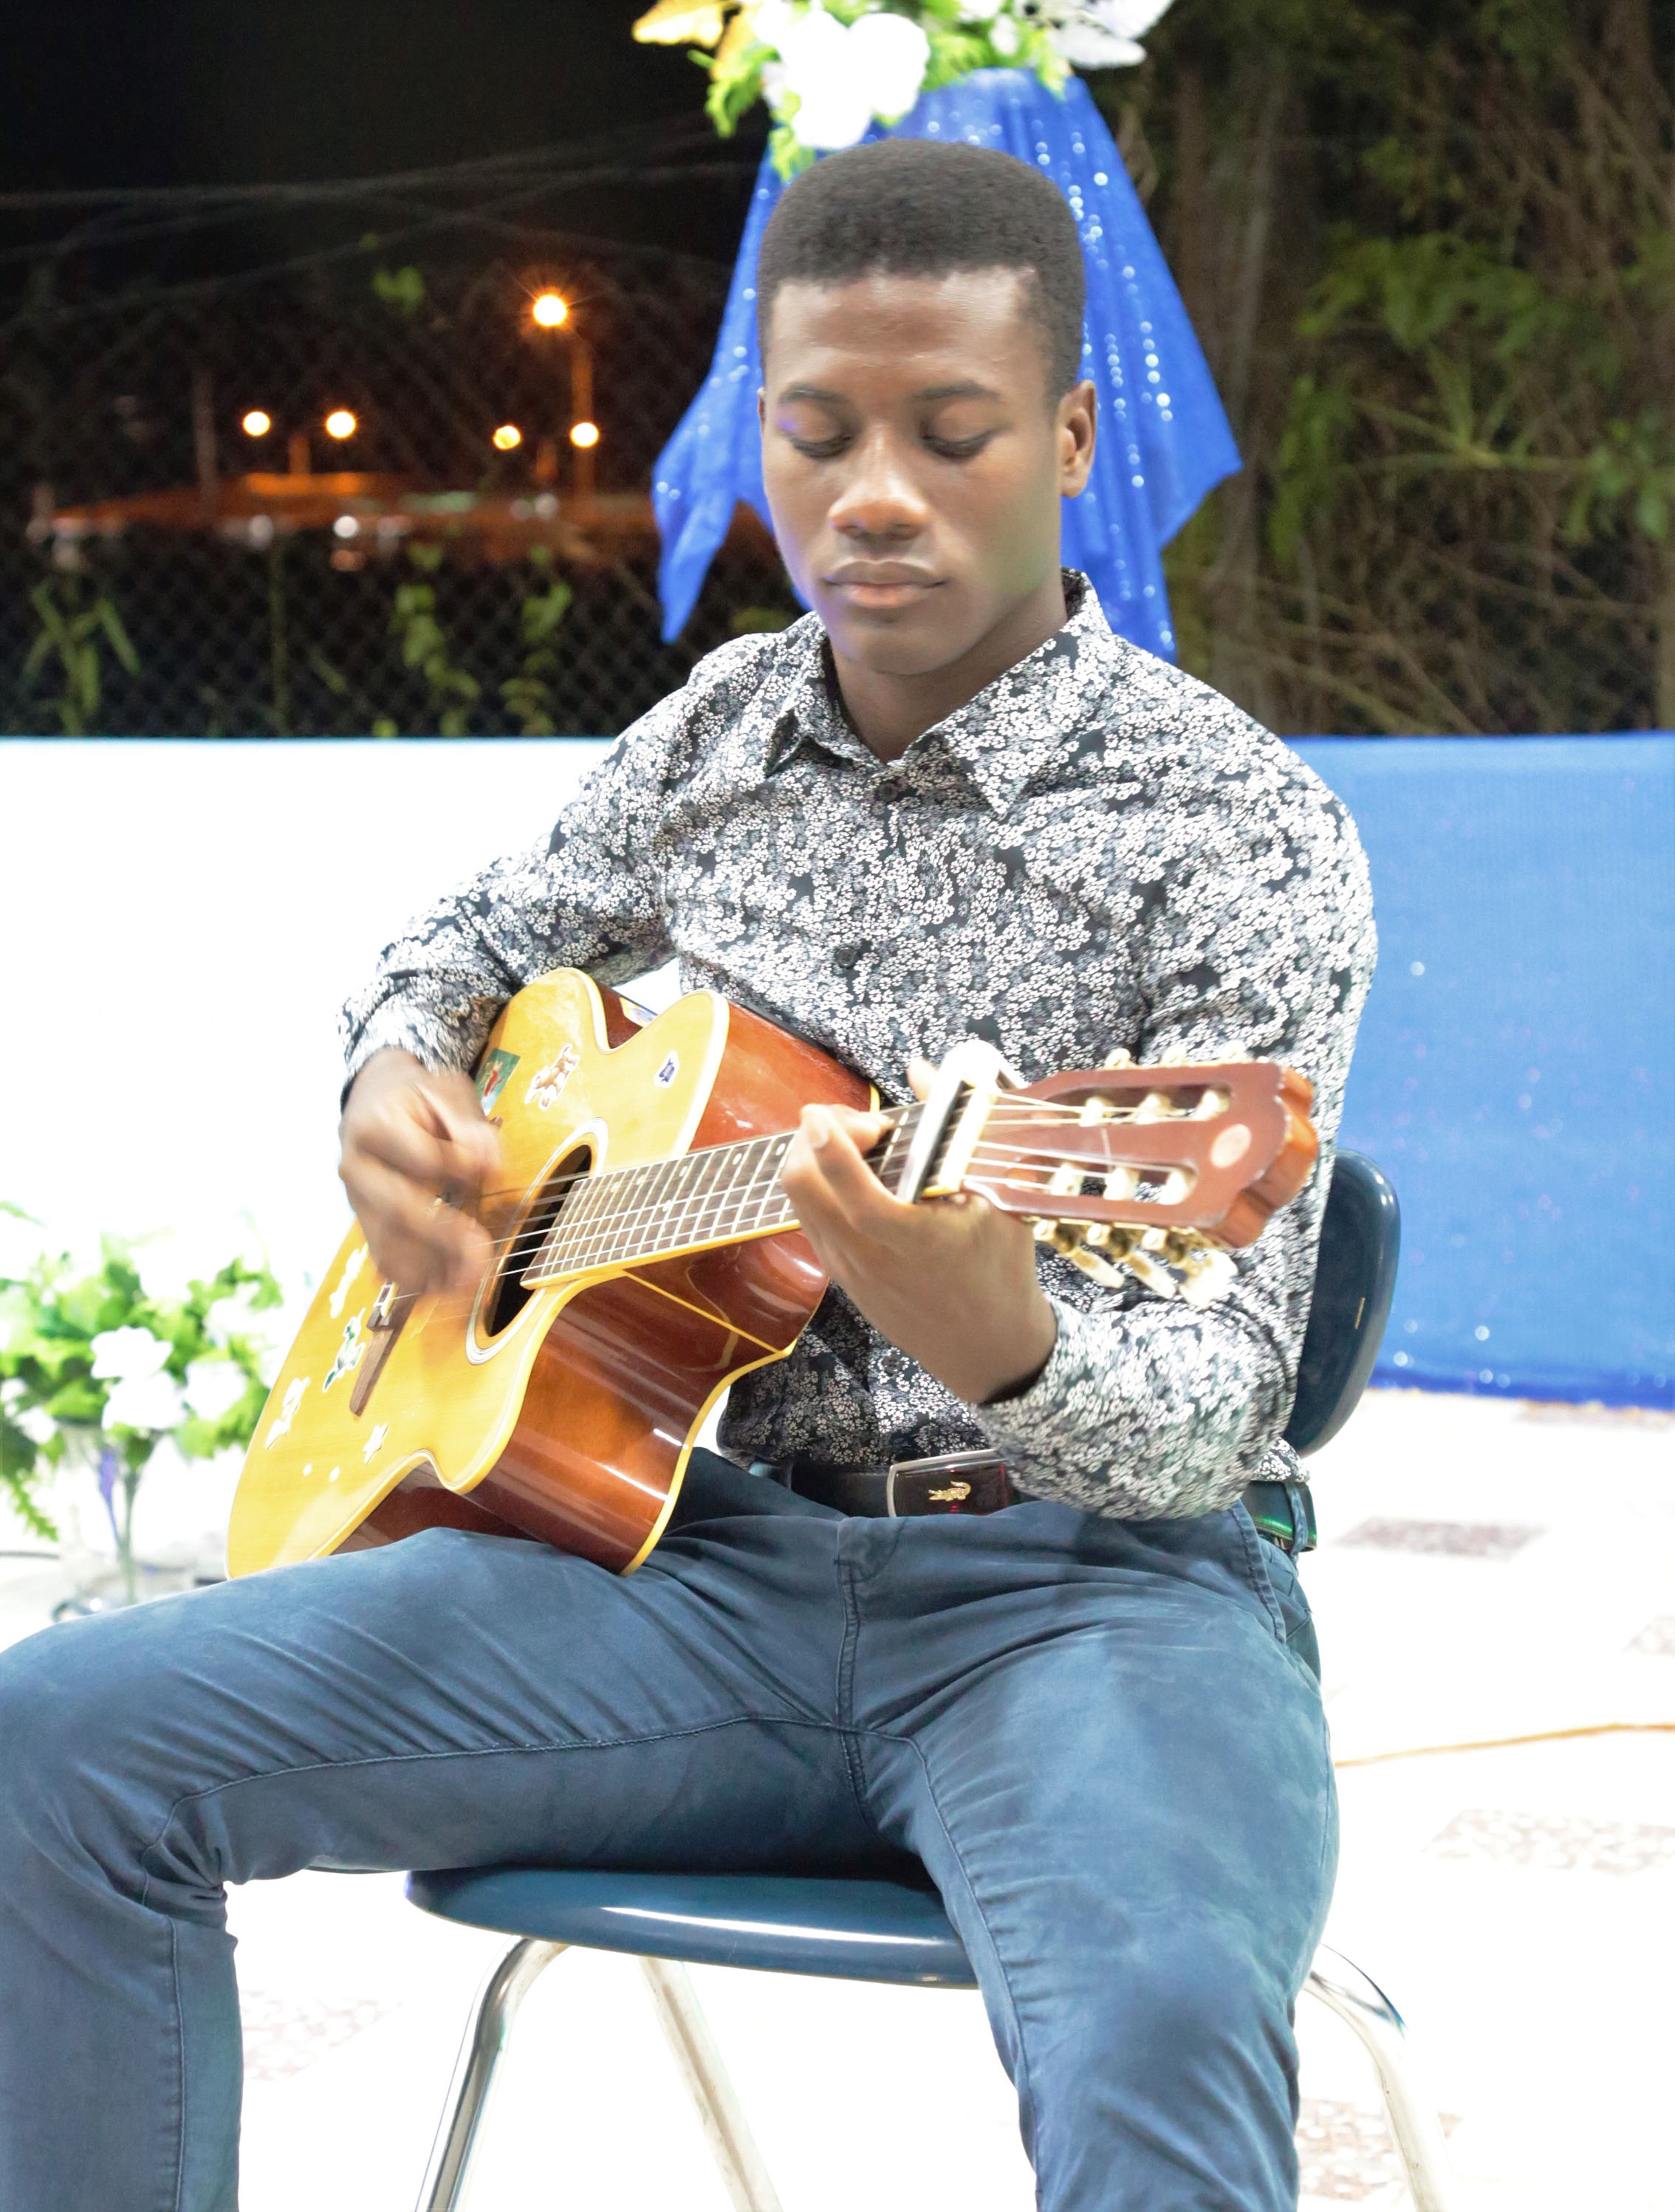 Guitarist Jermaine Kendall Has A Passion For Music Stabroek News